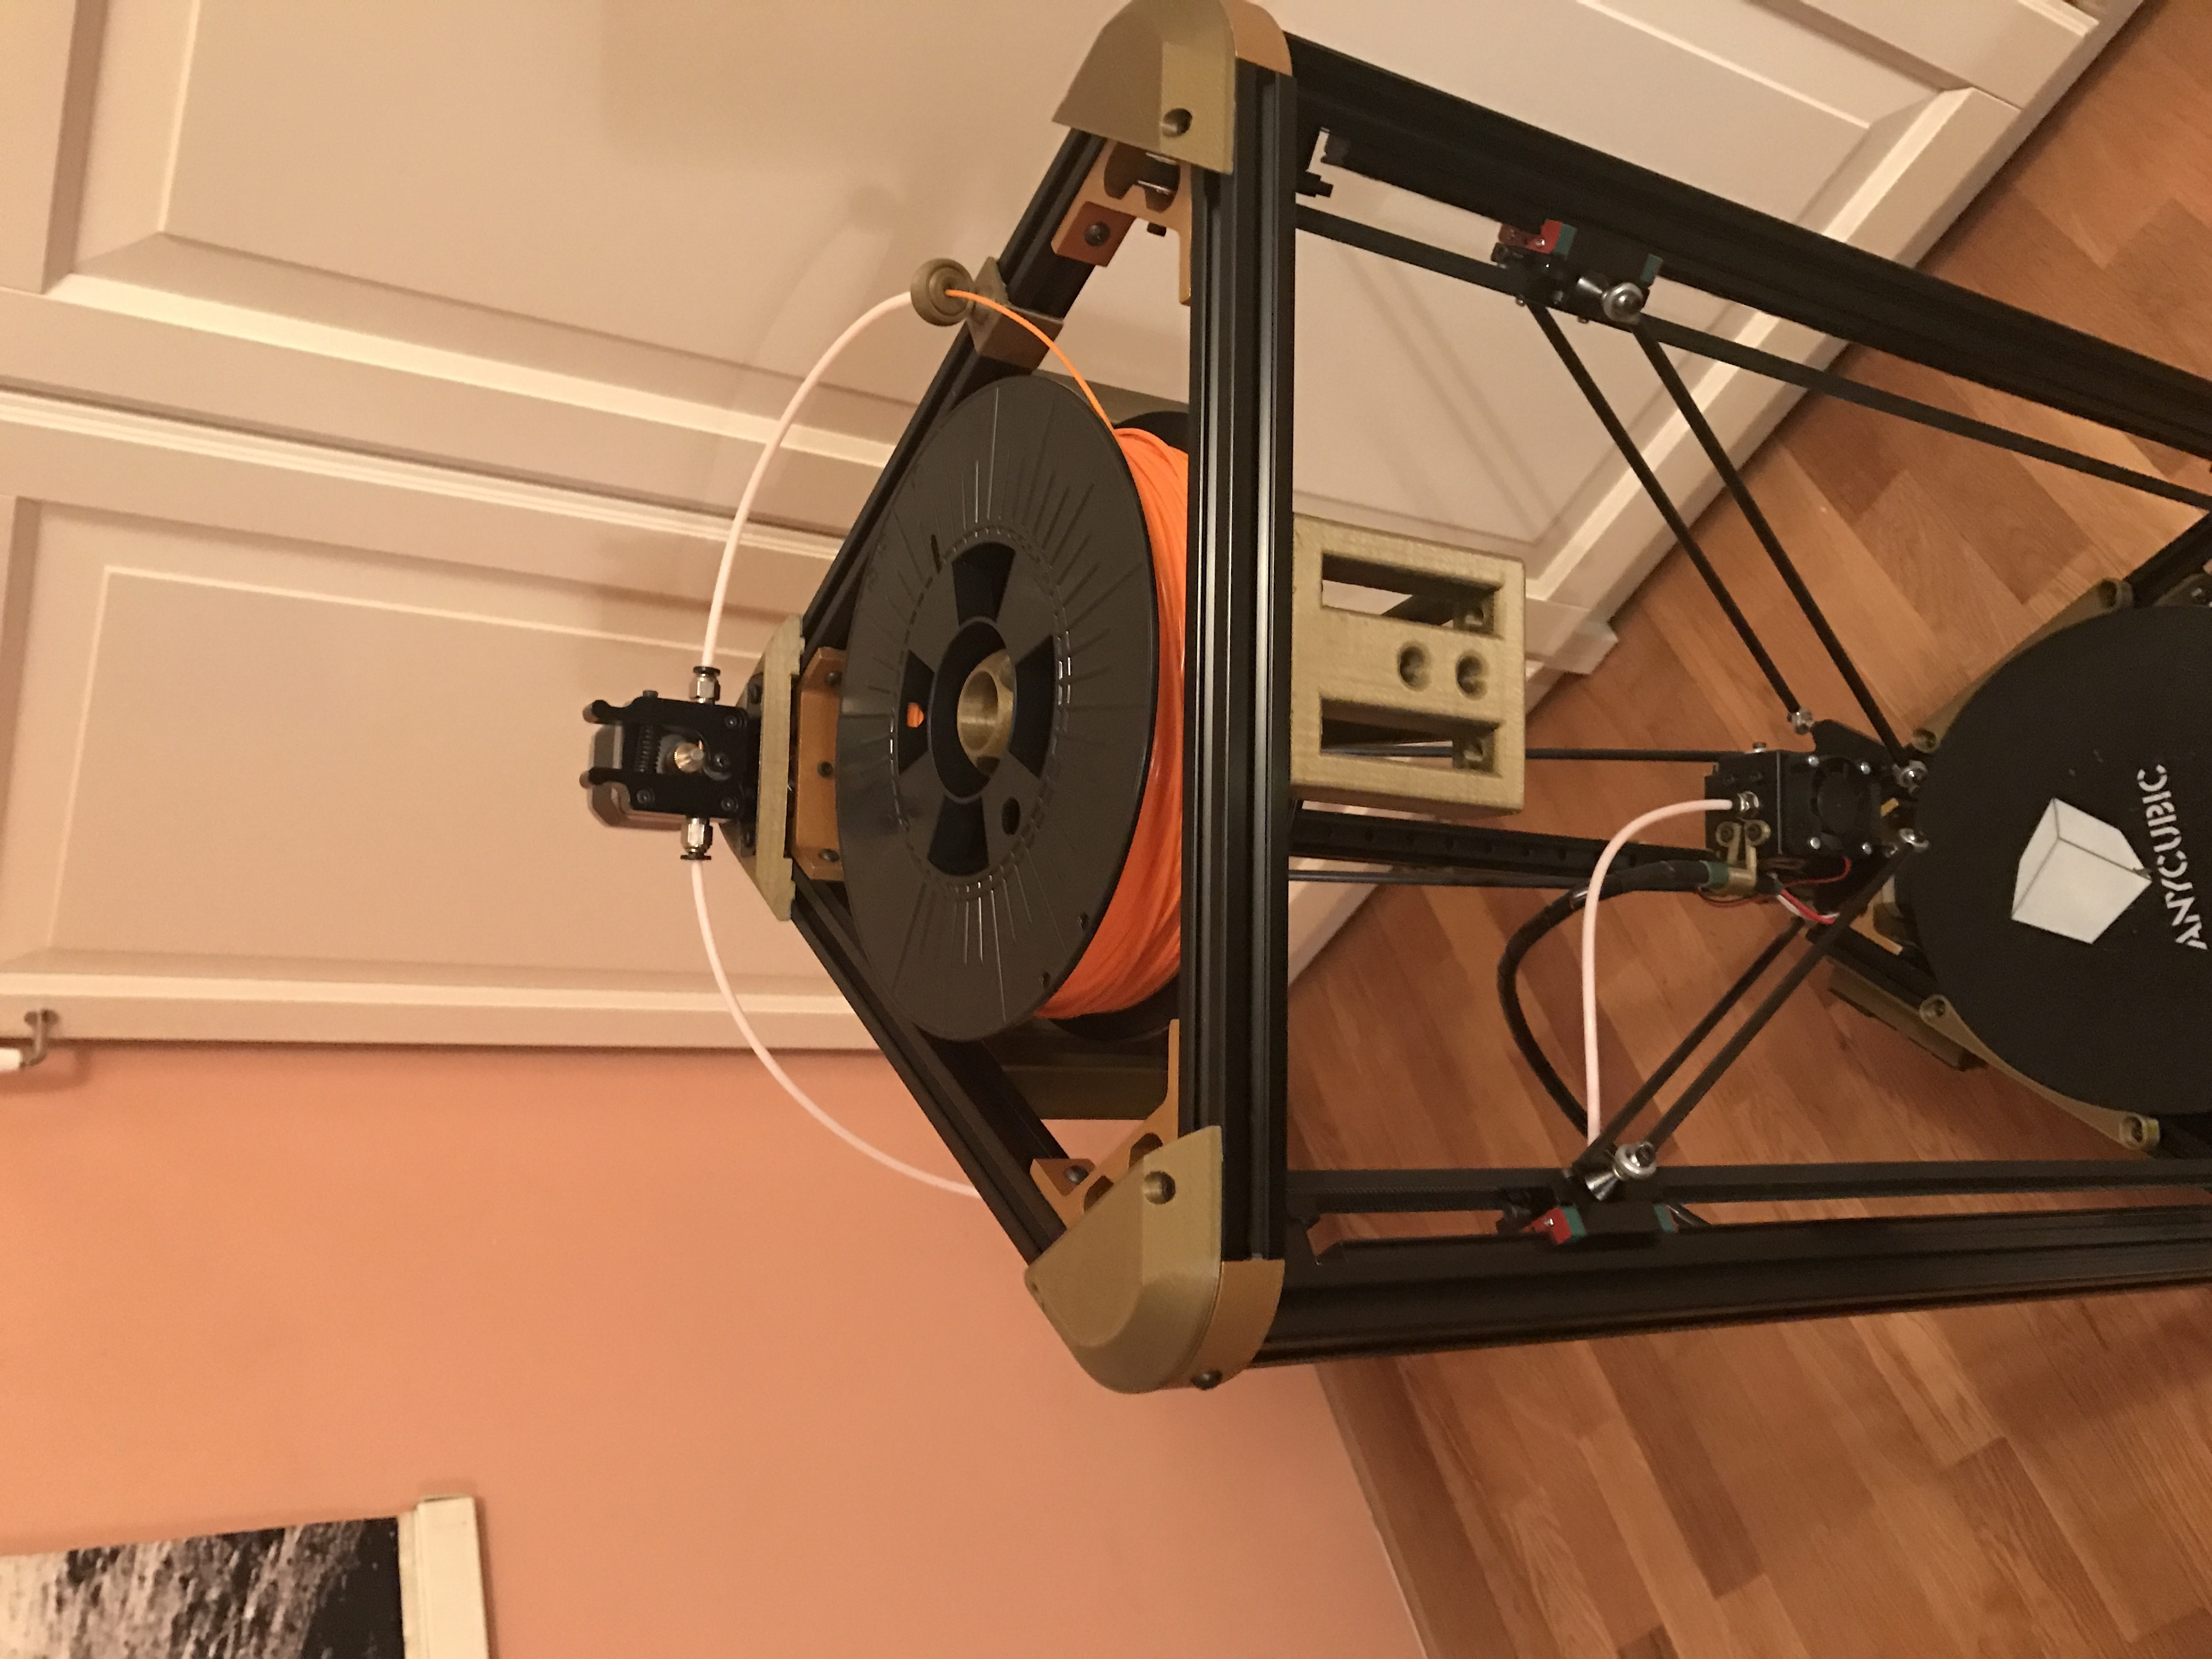 IMG_3274.JPG Download free STL file Anycubic Kossel Plus Top Internal Spool holder - Fixed • 3D print object, TsunamiSoul